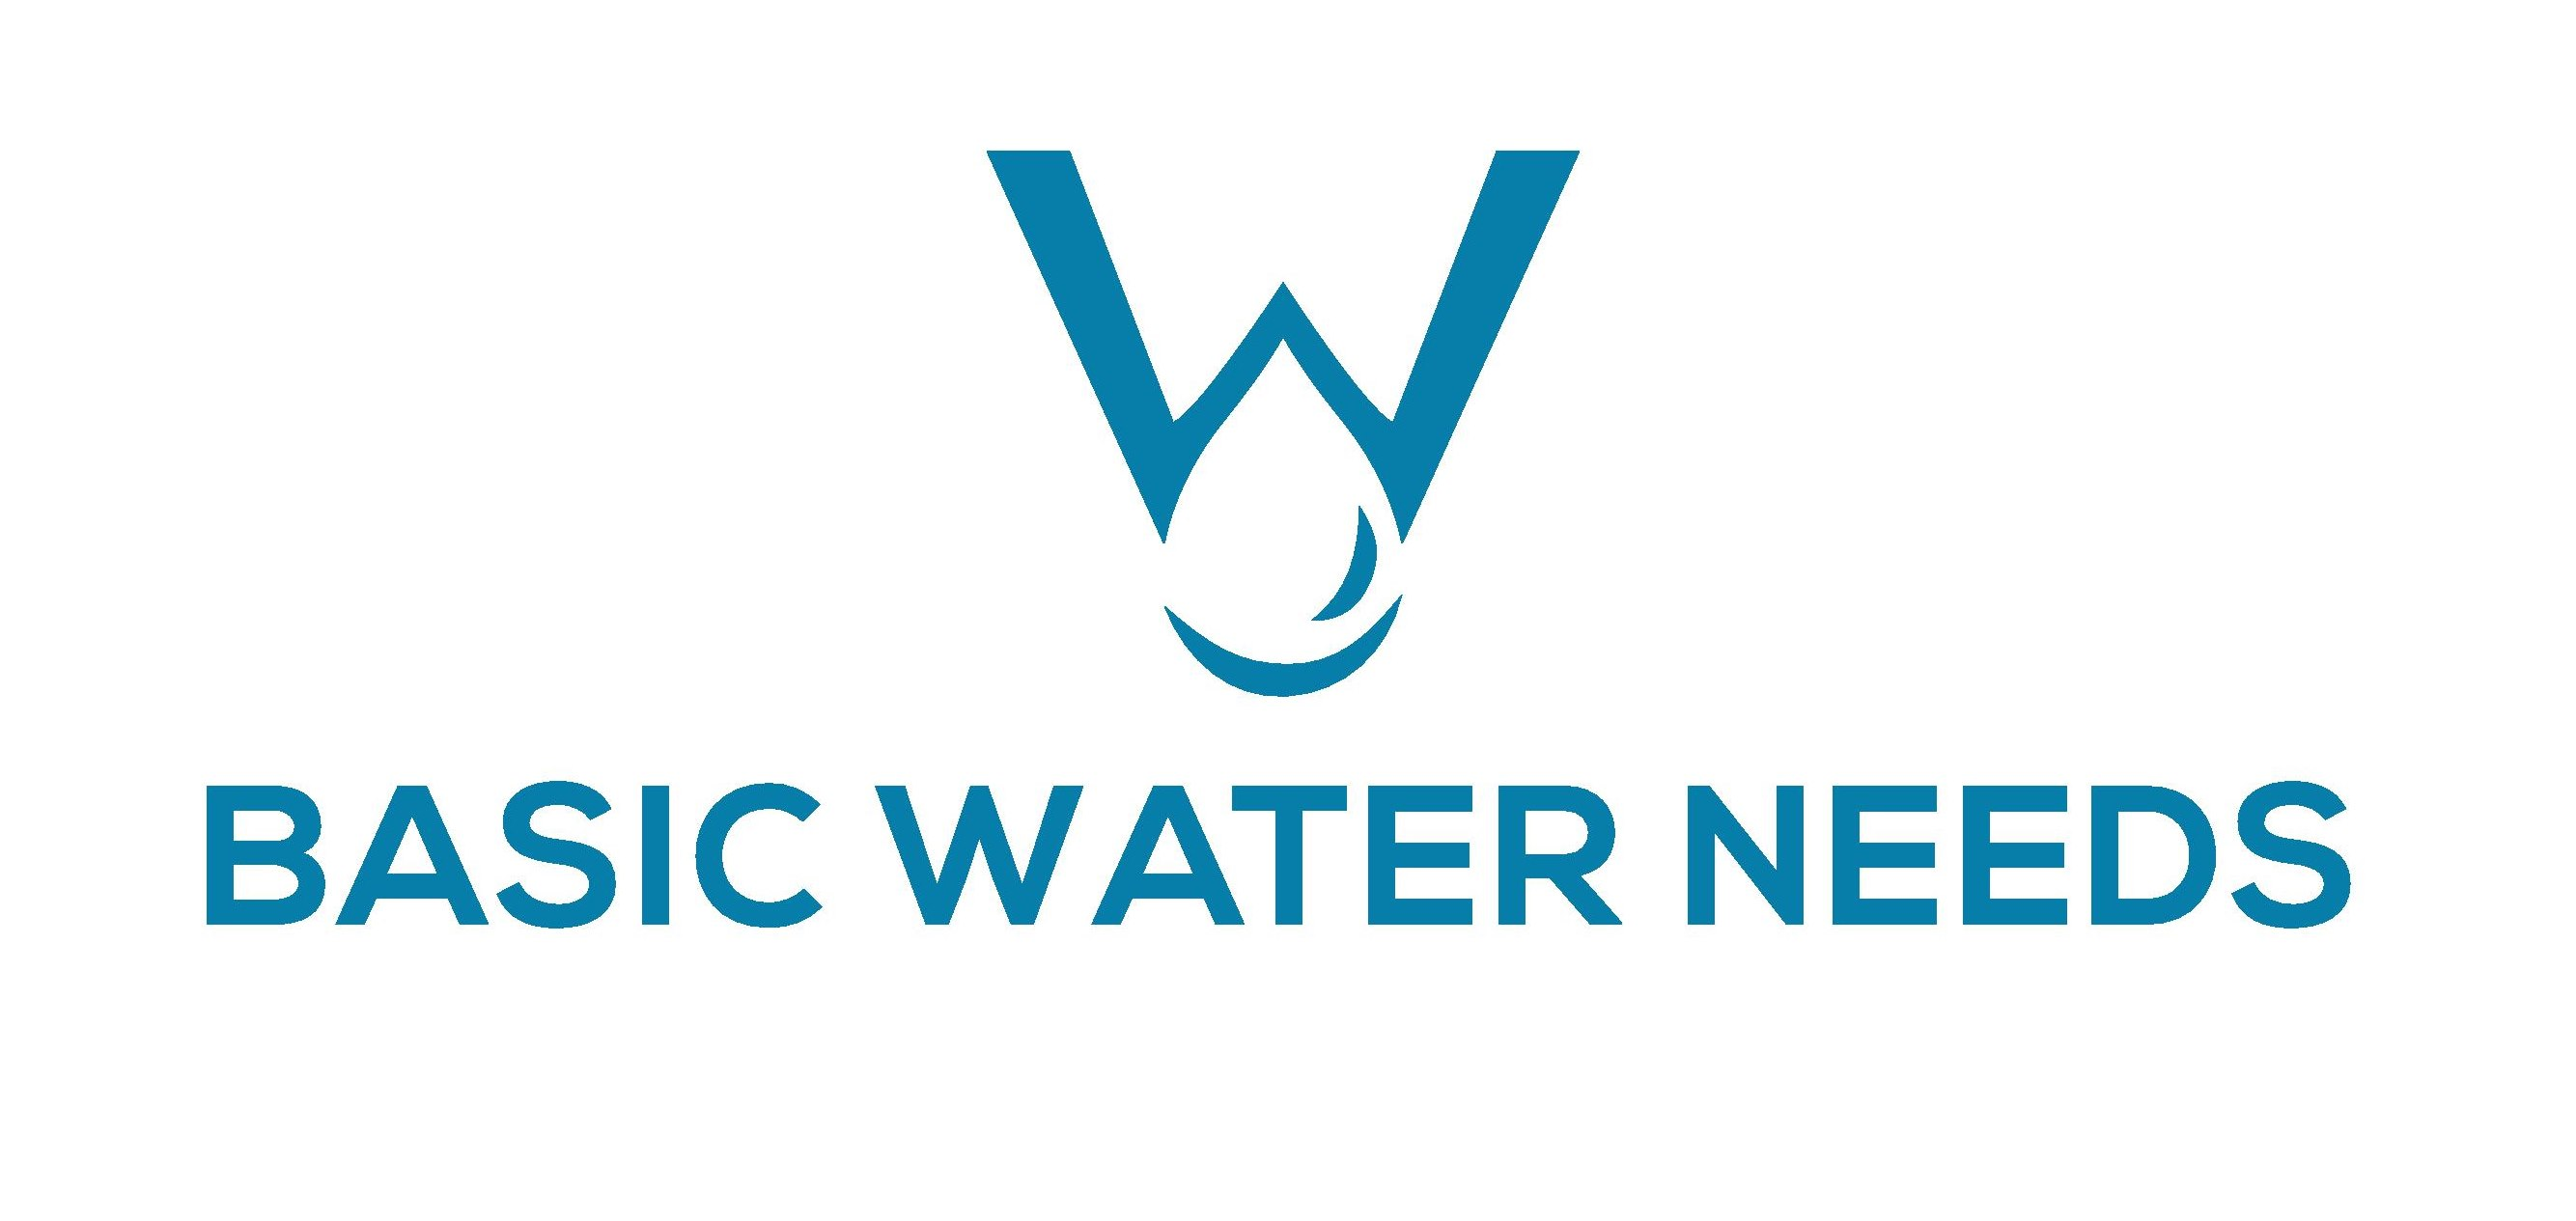 Basic Water Needs Logo